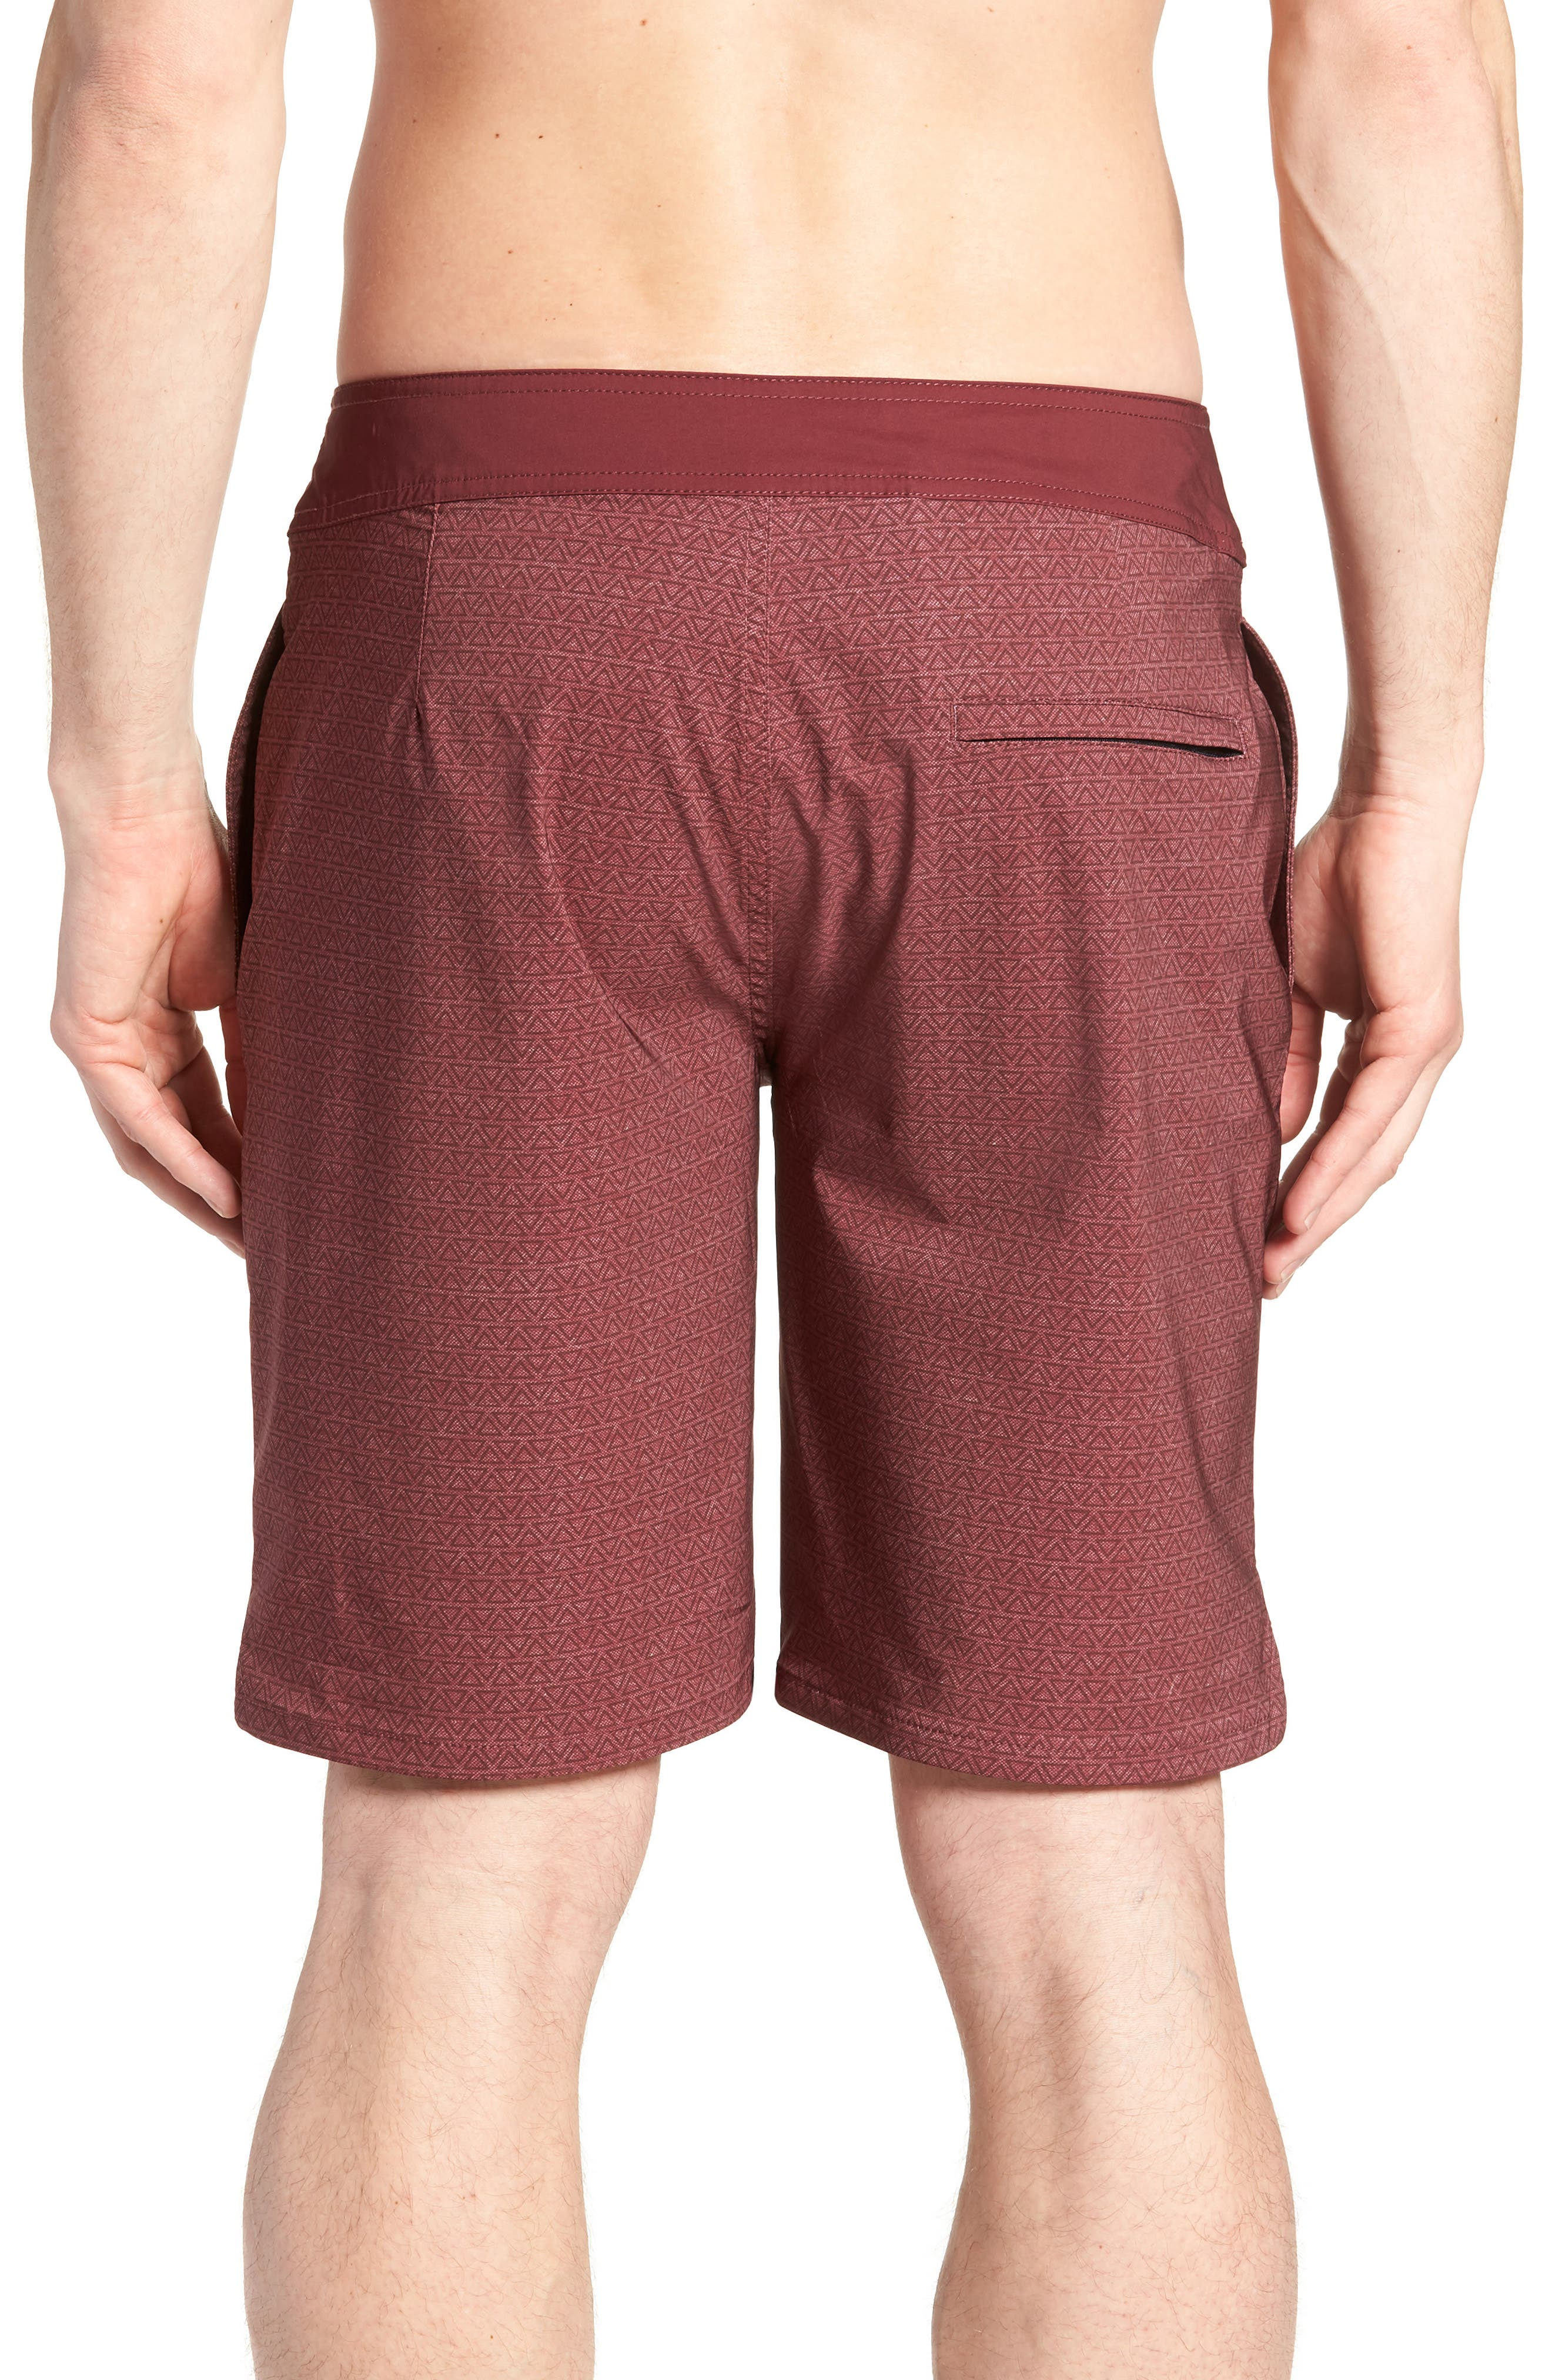 Blanders Regular Fit Board Shorts,                             Alternate thumbnail 2, color,                             930